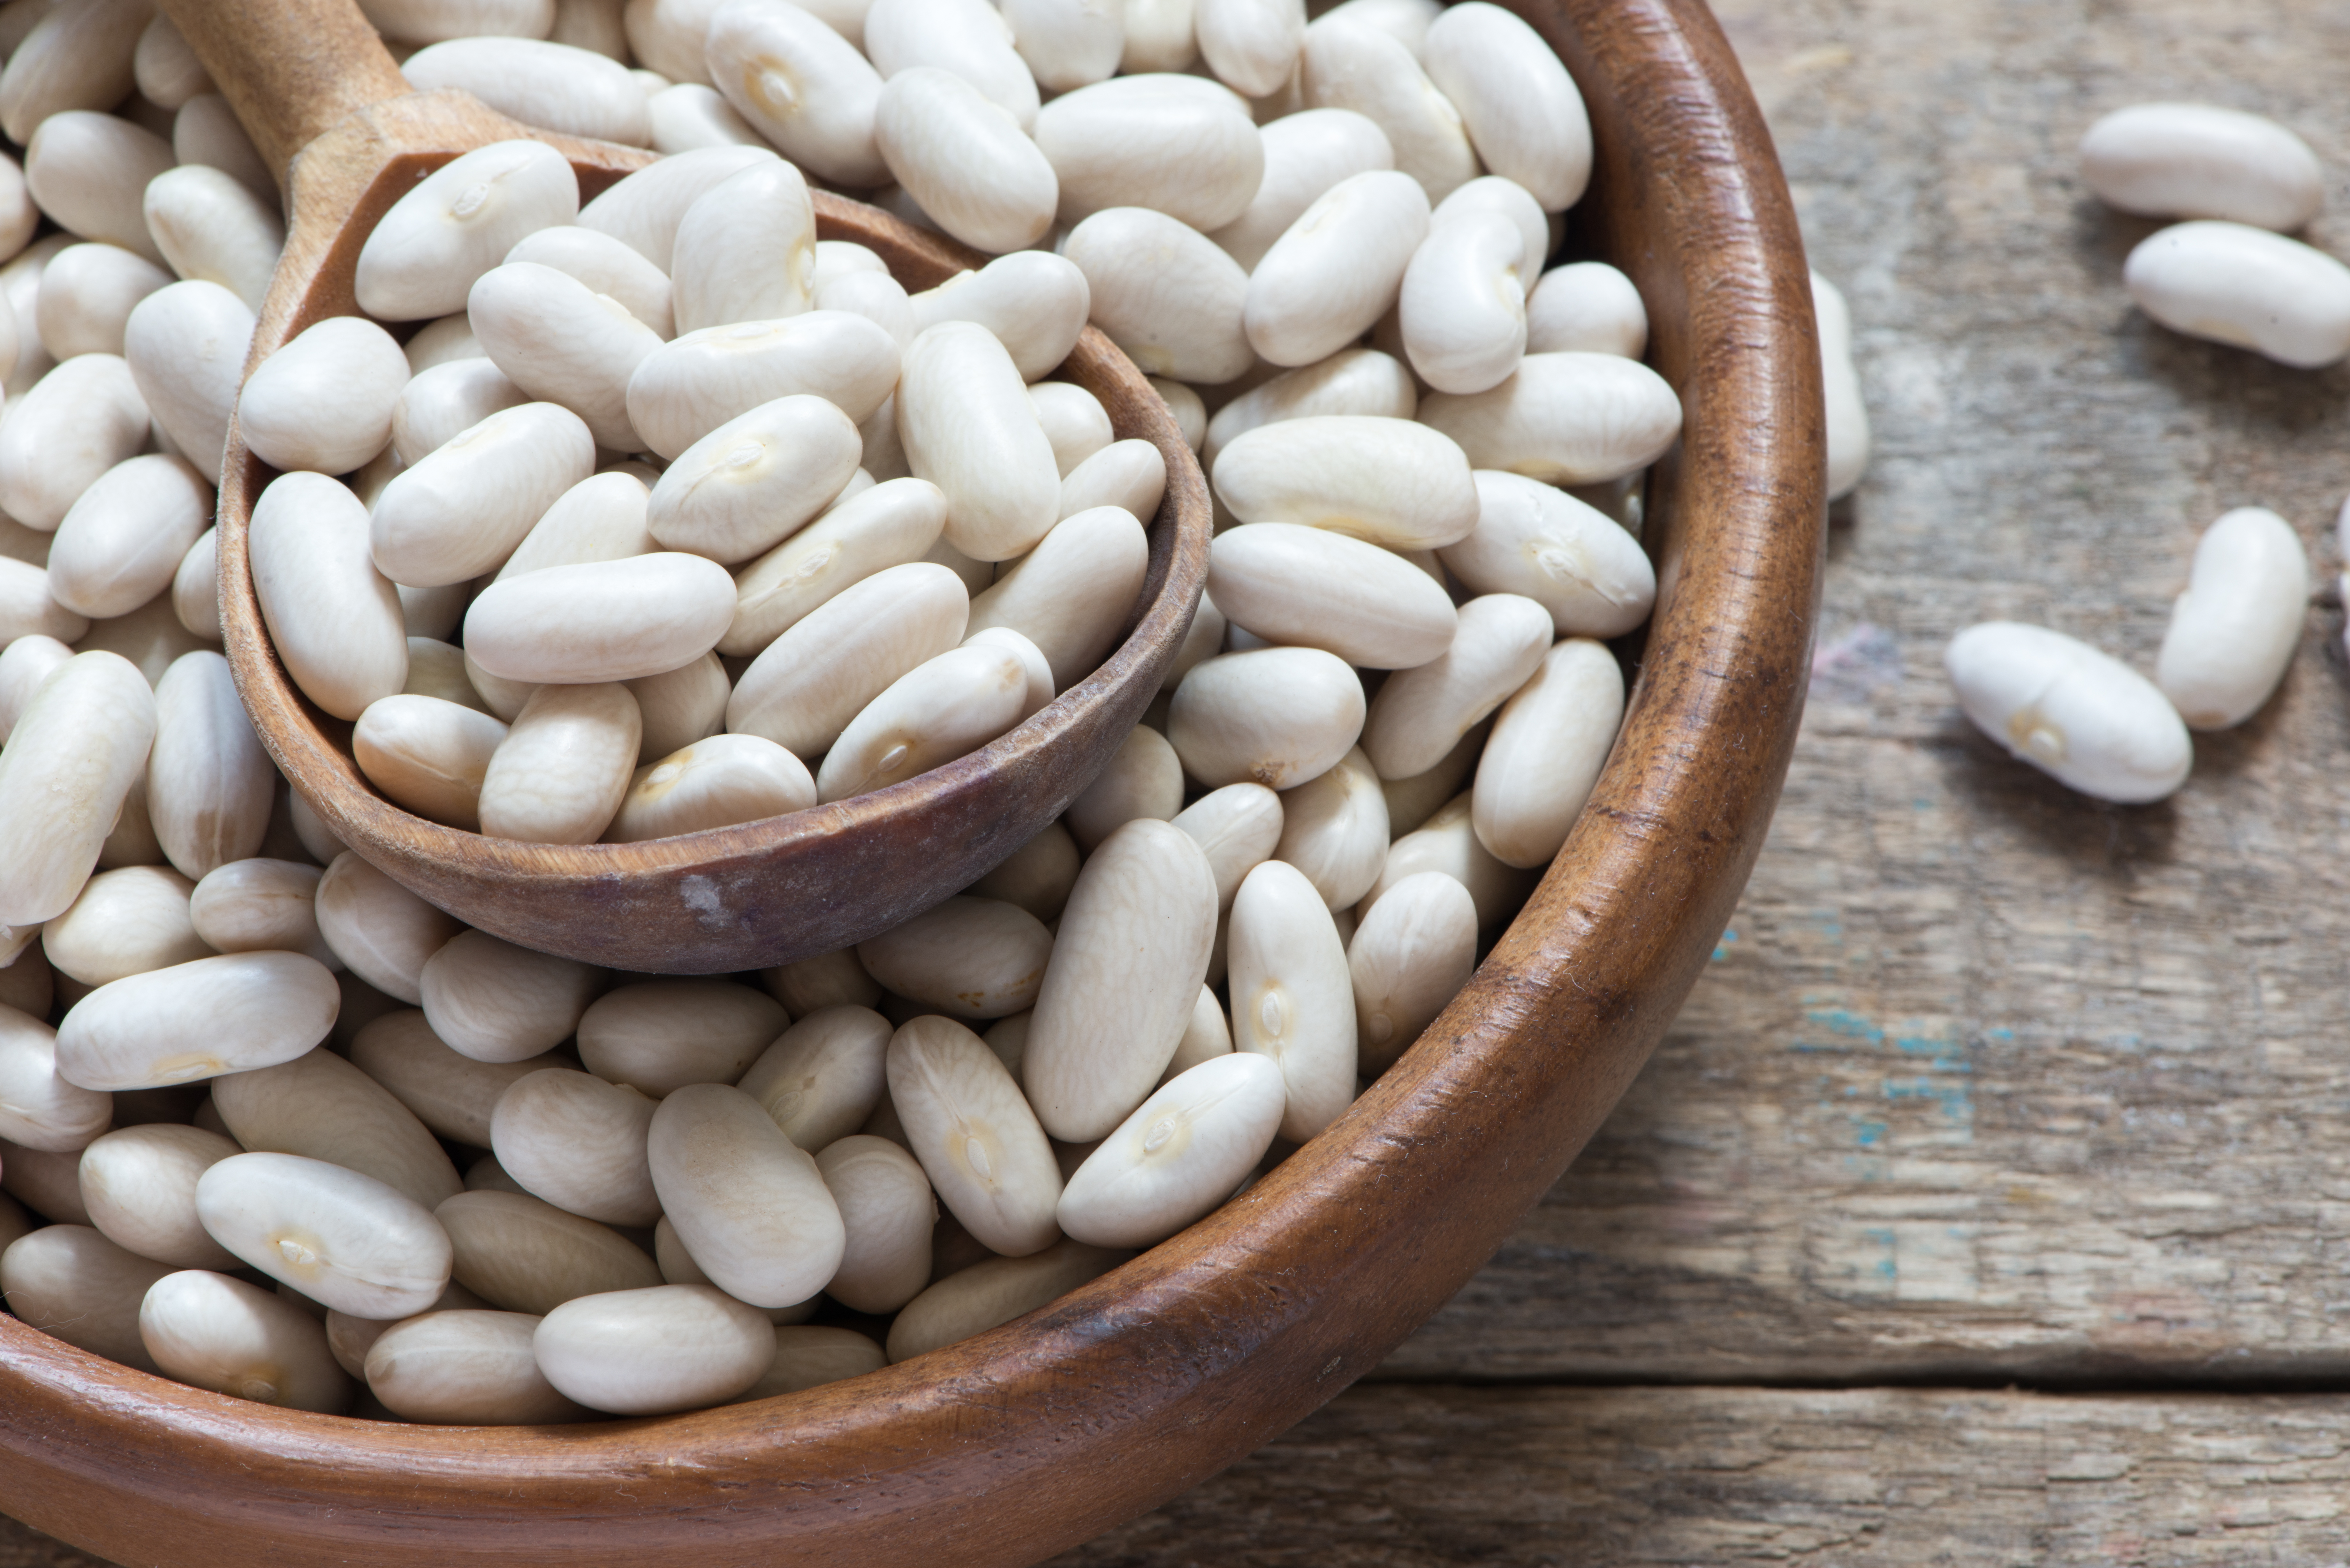 What Are The Benefits Of White Kidney Beans Healthy Eating Sf Gate